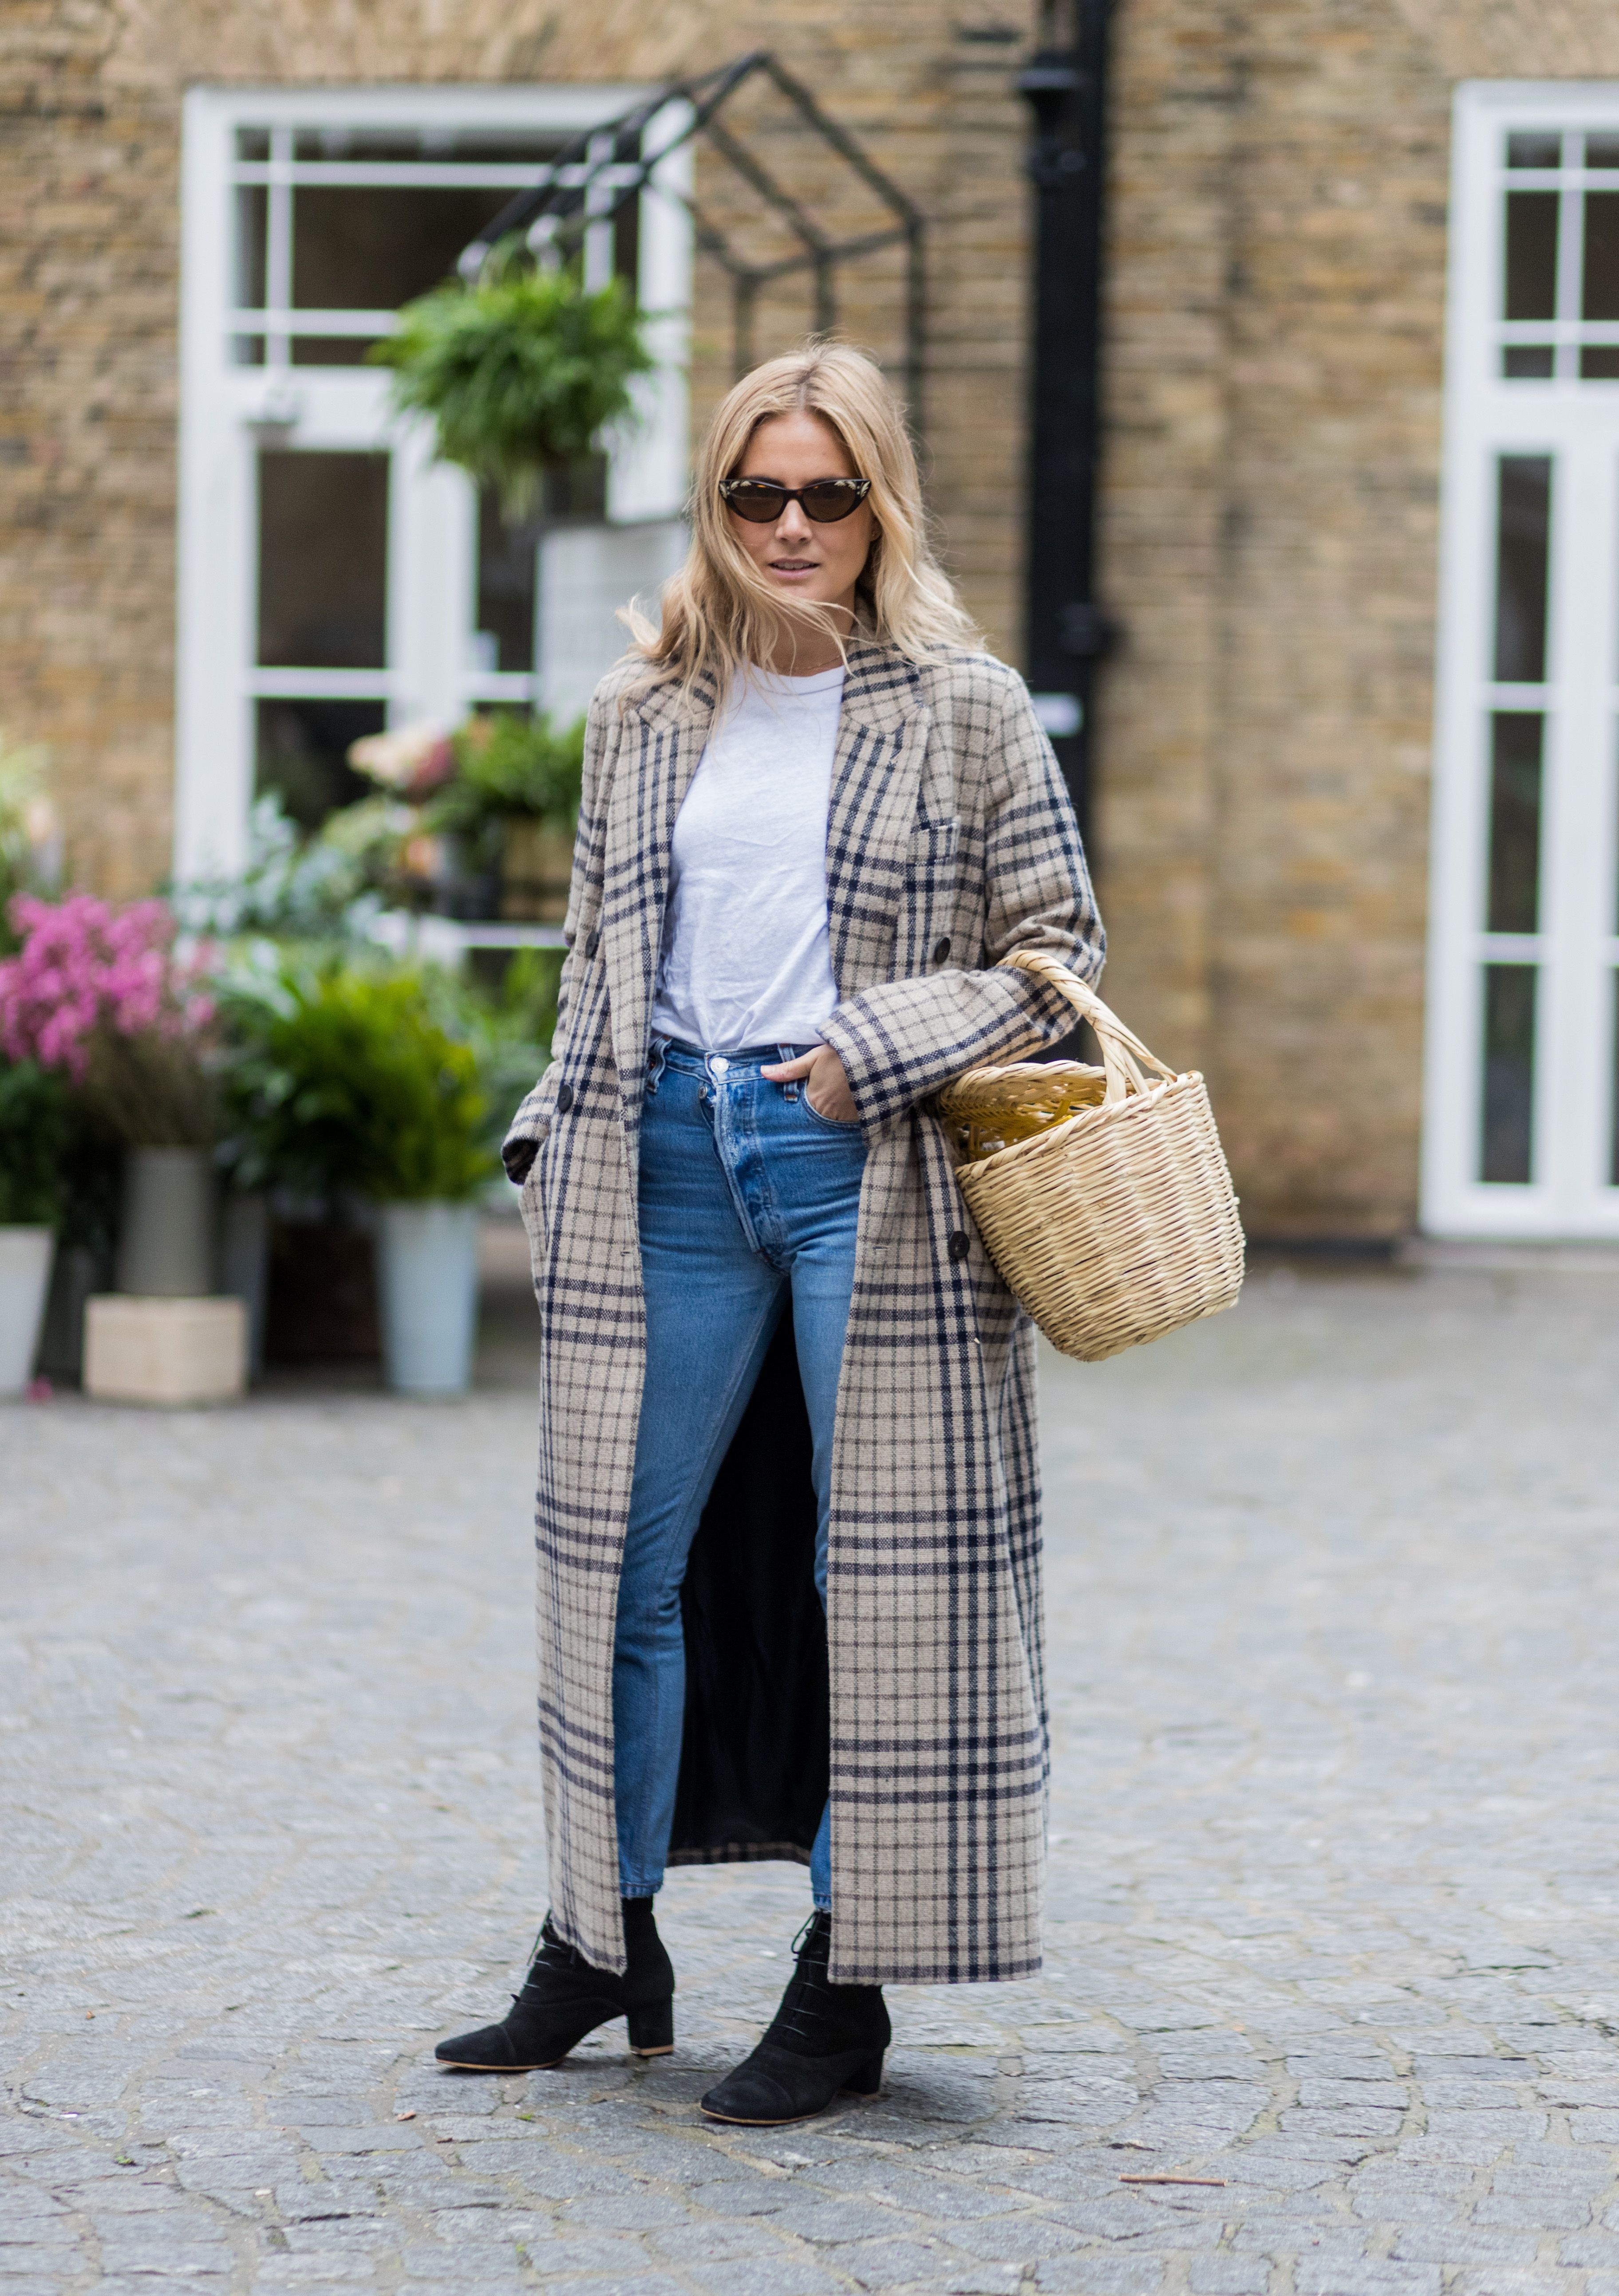 ac4961cbd50 How to Dress Up a T-Shirt and Jeans to Look More Chic